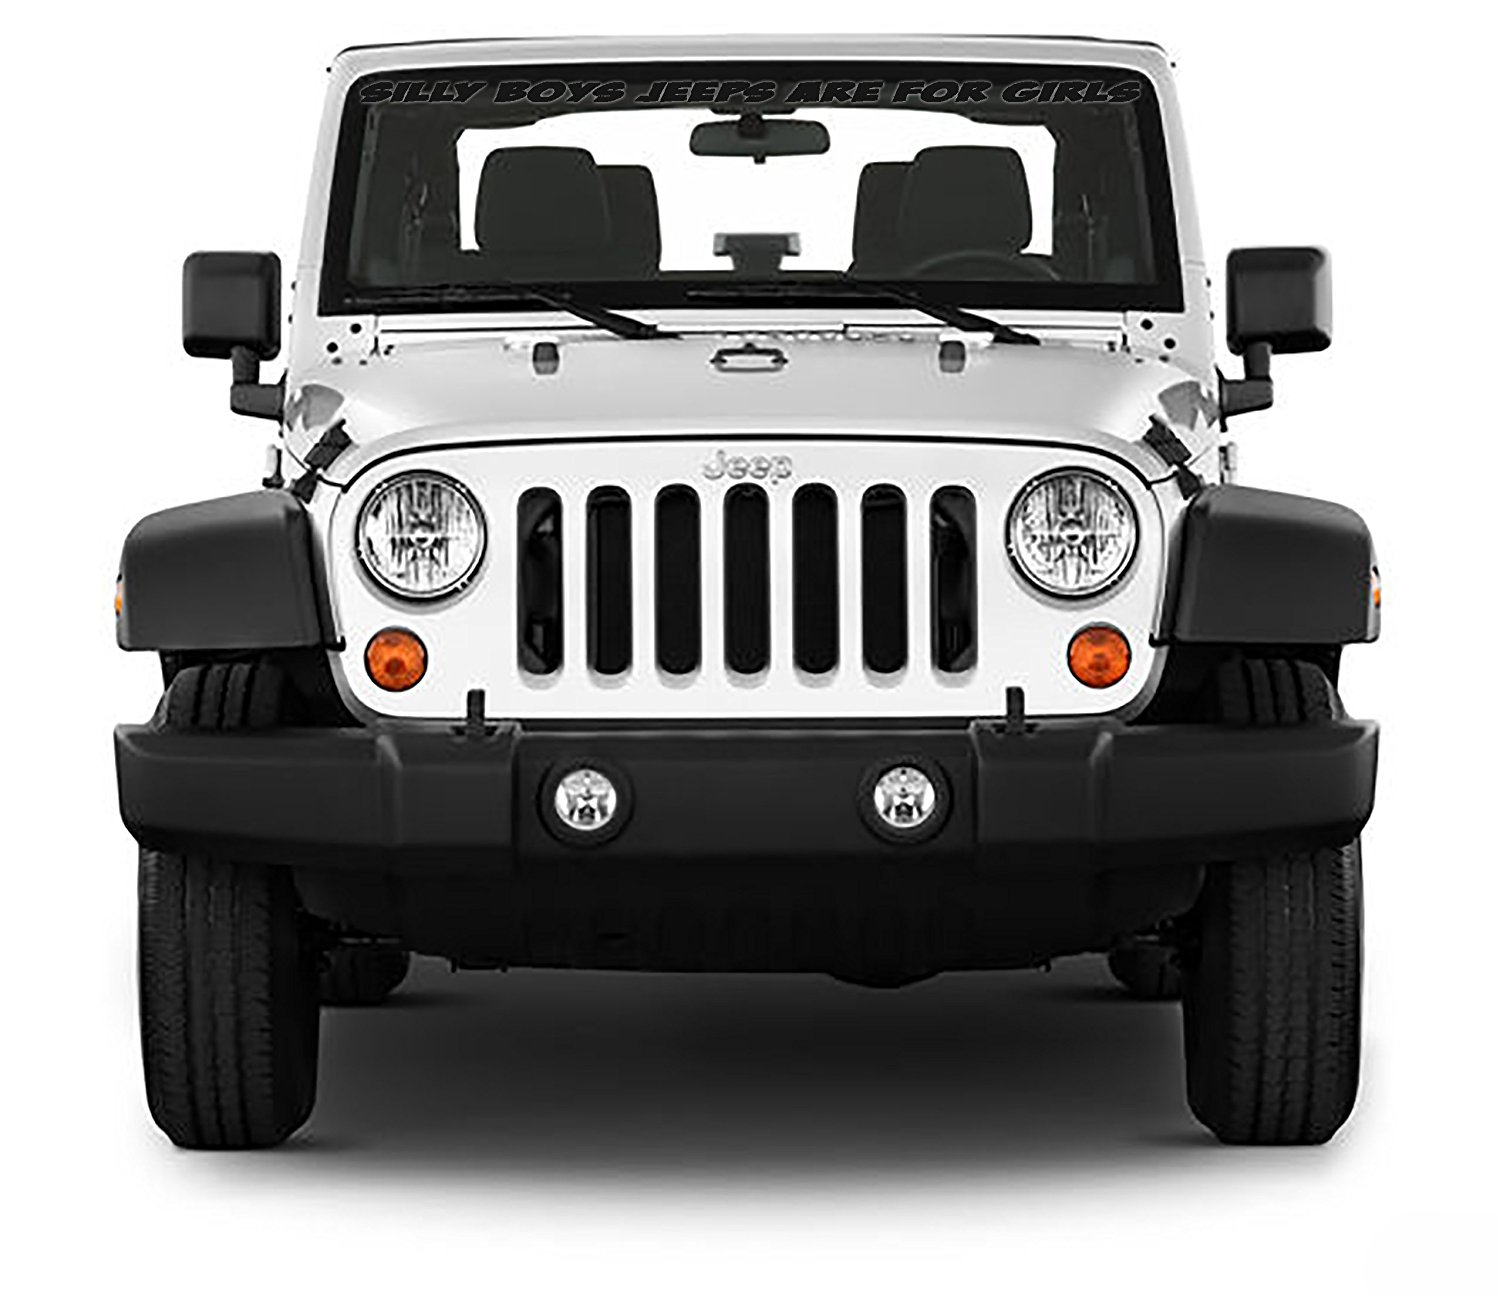 hight resolution of get quotations front windshield front window decal silly boys jeeps are for girls for jeep wrangler 40